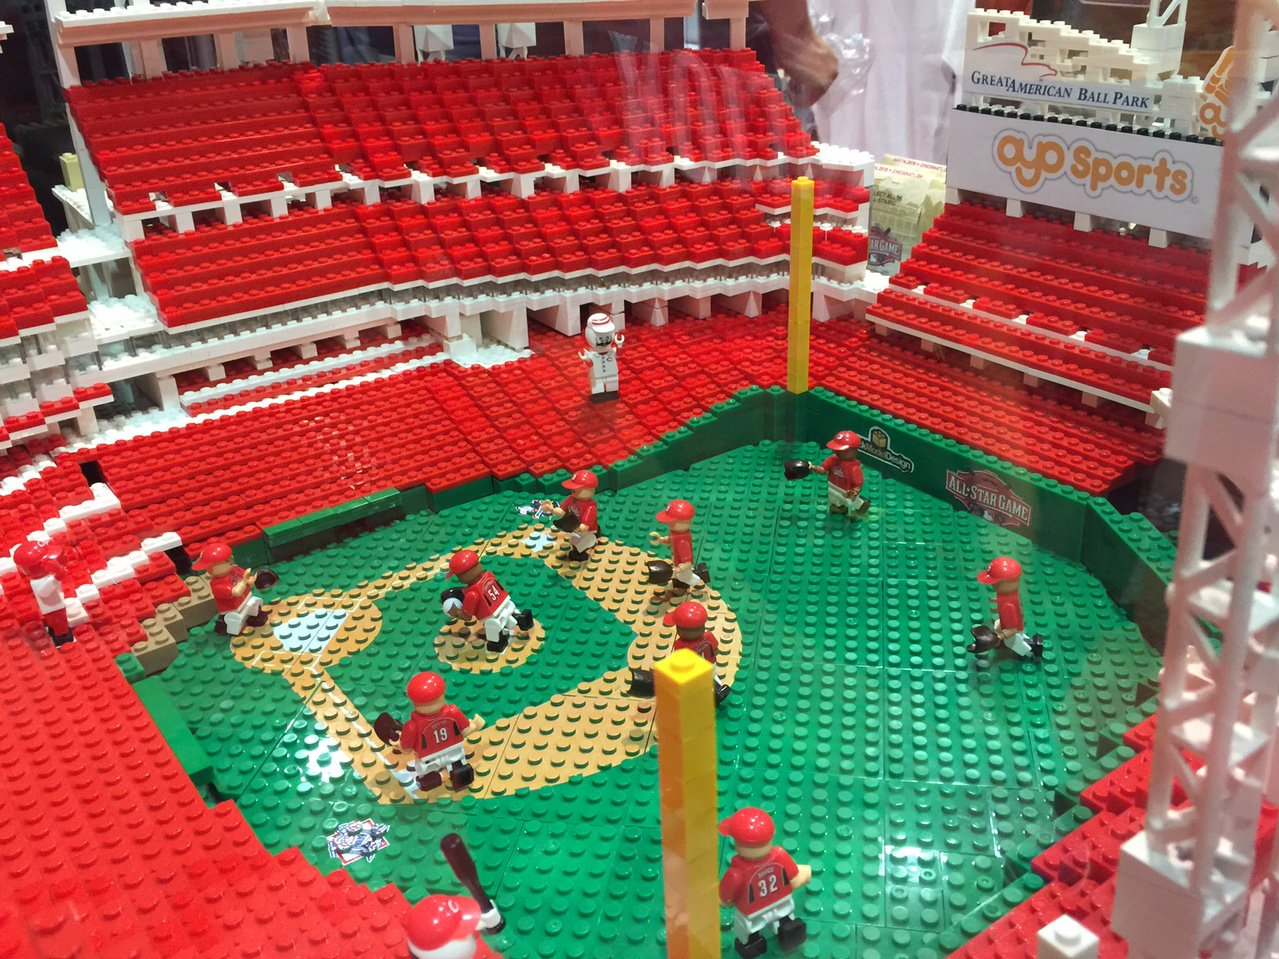 Oyo Sports Cincinnati Reds Field